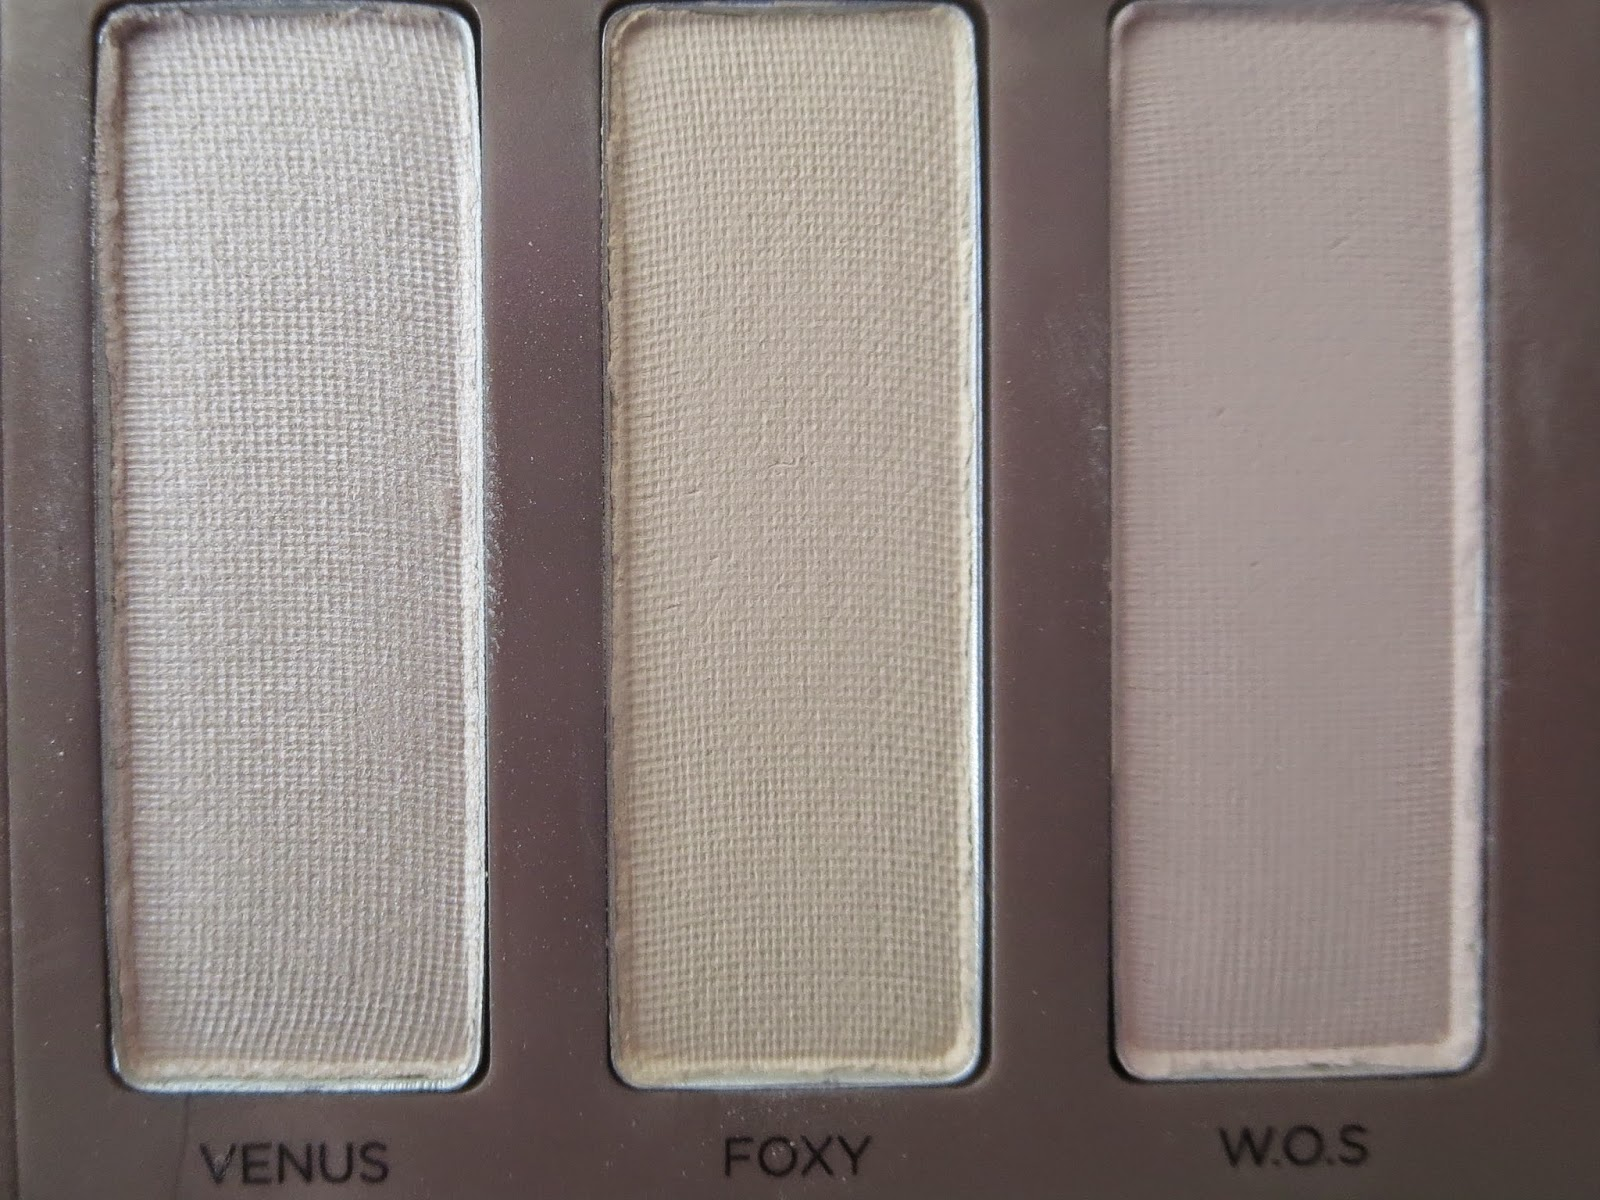 a picture of Urban Decay Naked Basics Palette; Venus, Foxy, W.O.S